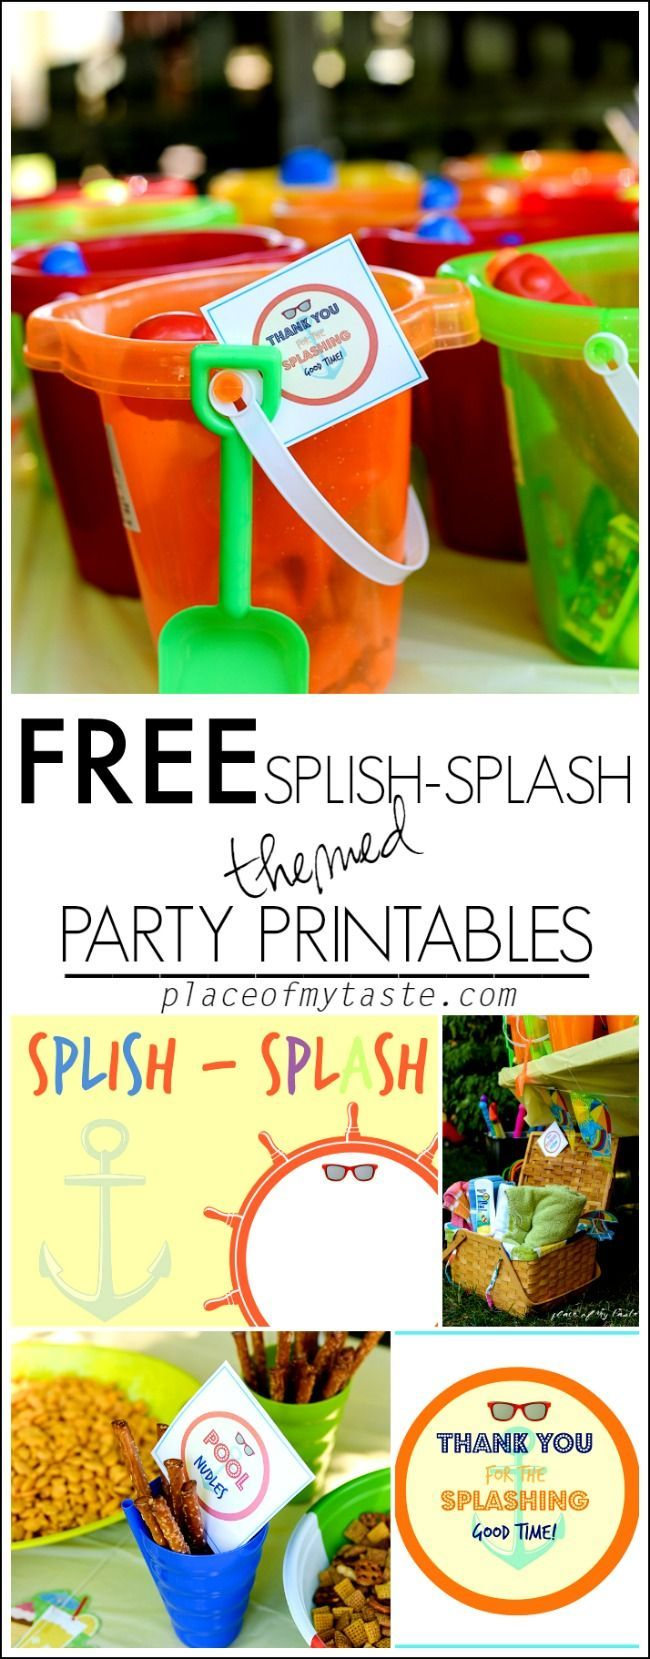 SPLISH SPLASH PARTY AND FREE PRINTABLES - Place Of My Taste